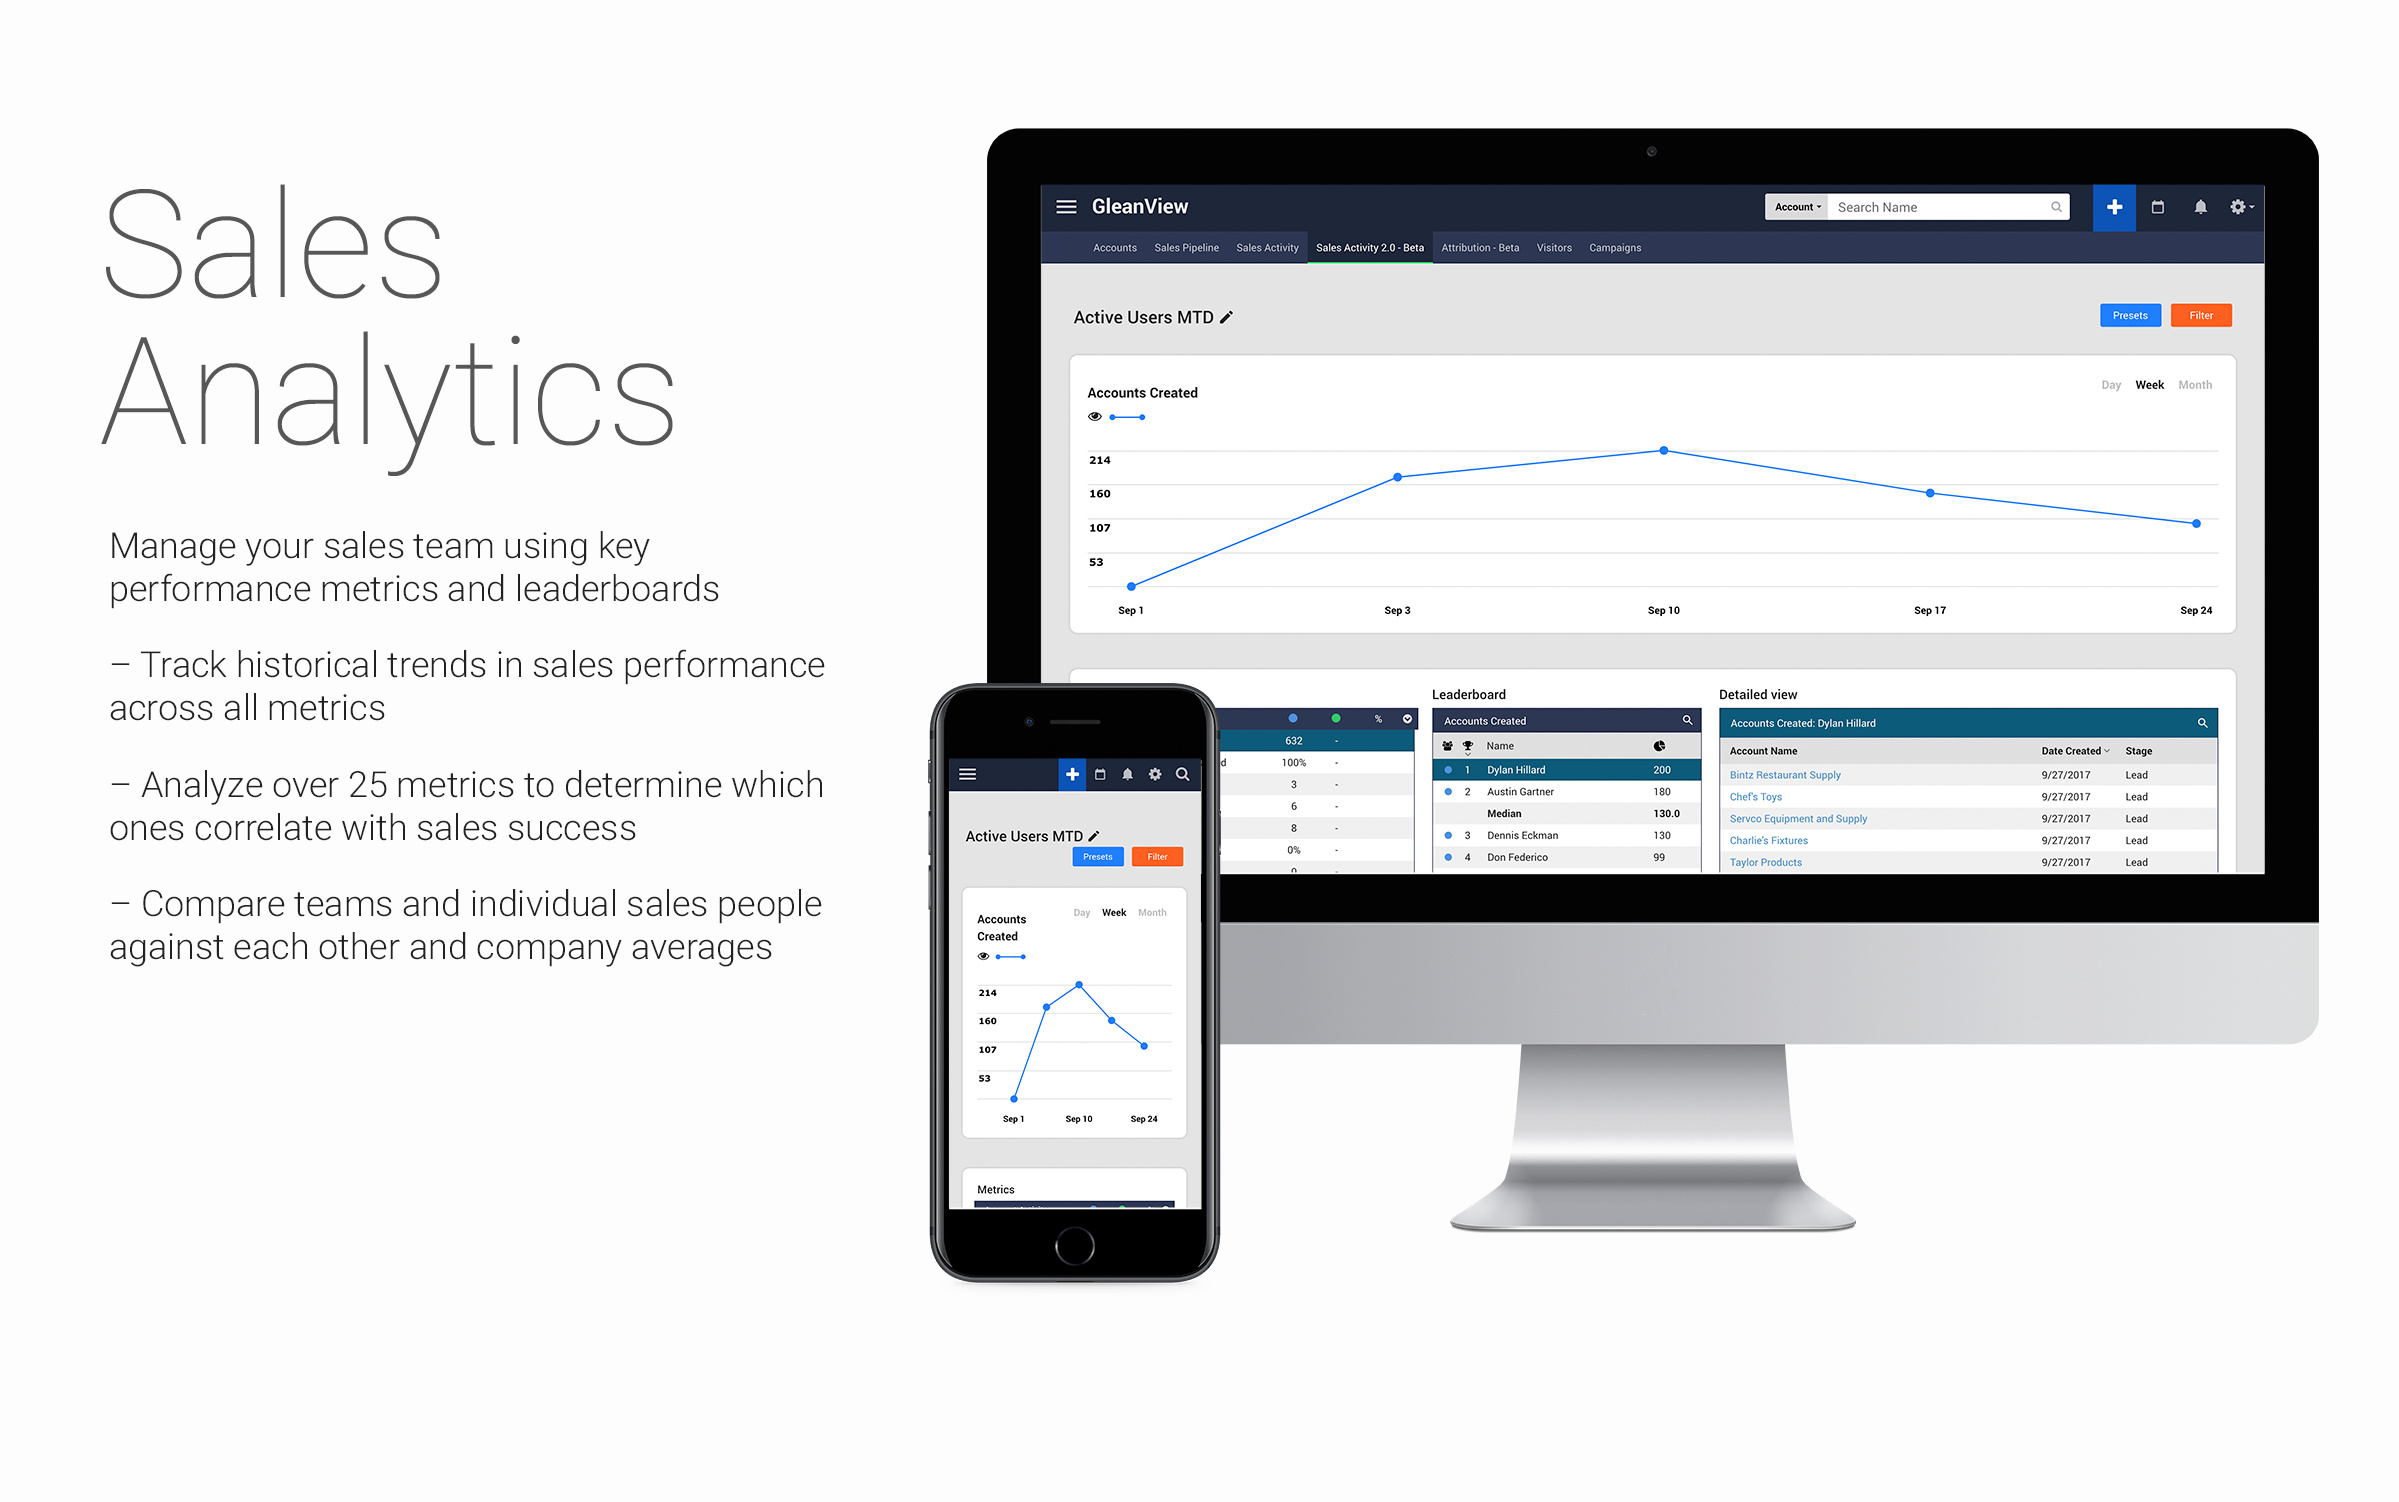 GleanView Demo - Sales Analytics